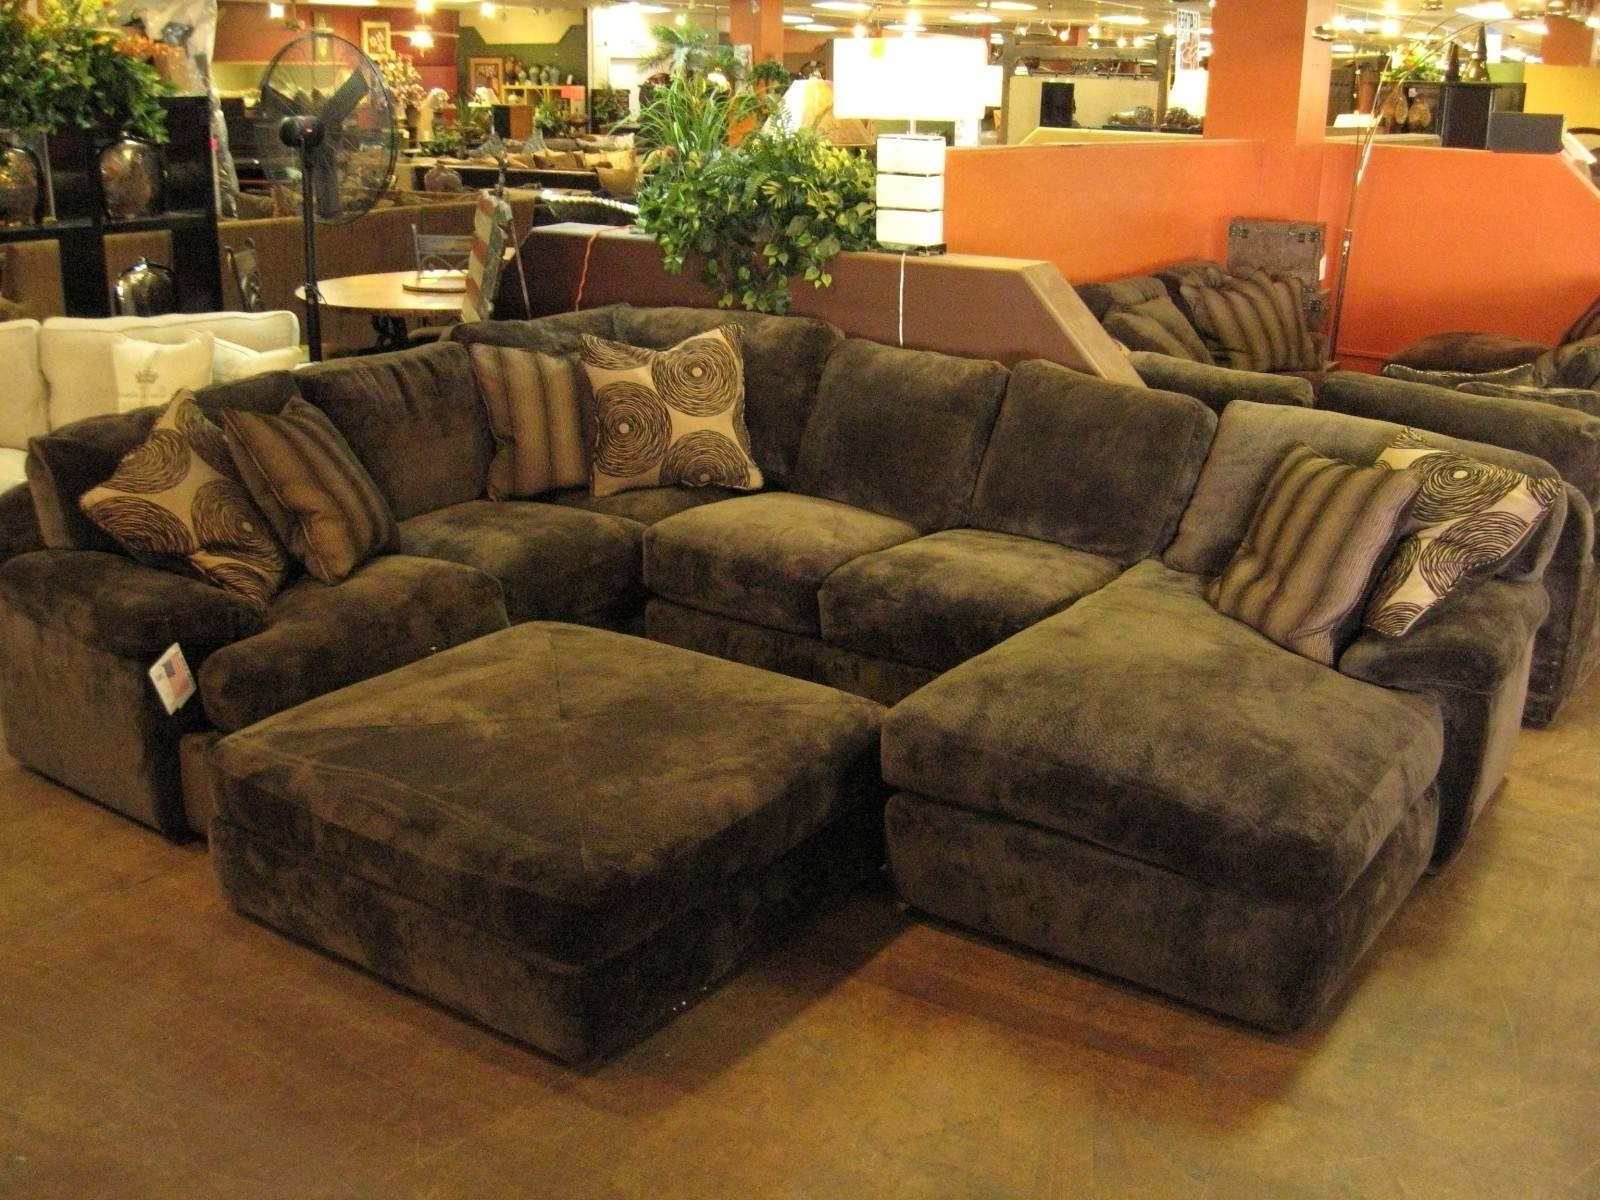 Sofa : Craigslist Sectional Illustrious Craigslist Free Section With Popular East Bay Sectional Sofas (View 8 of 15)